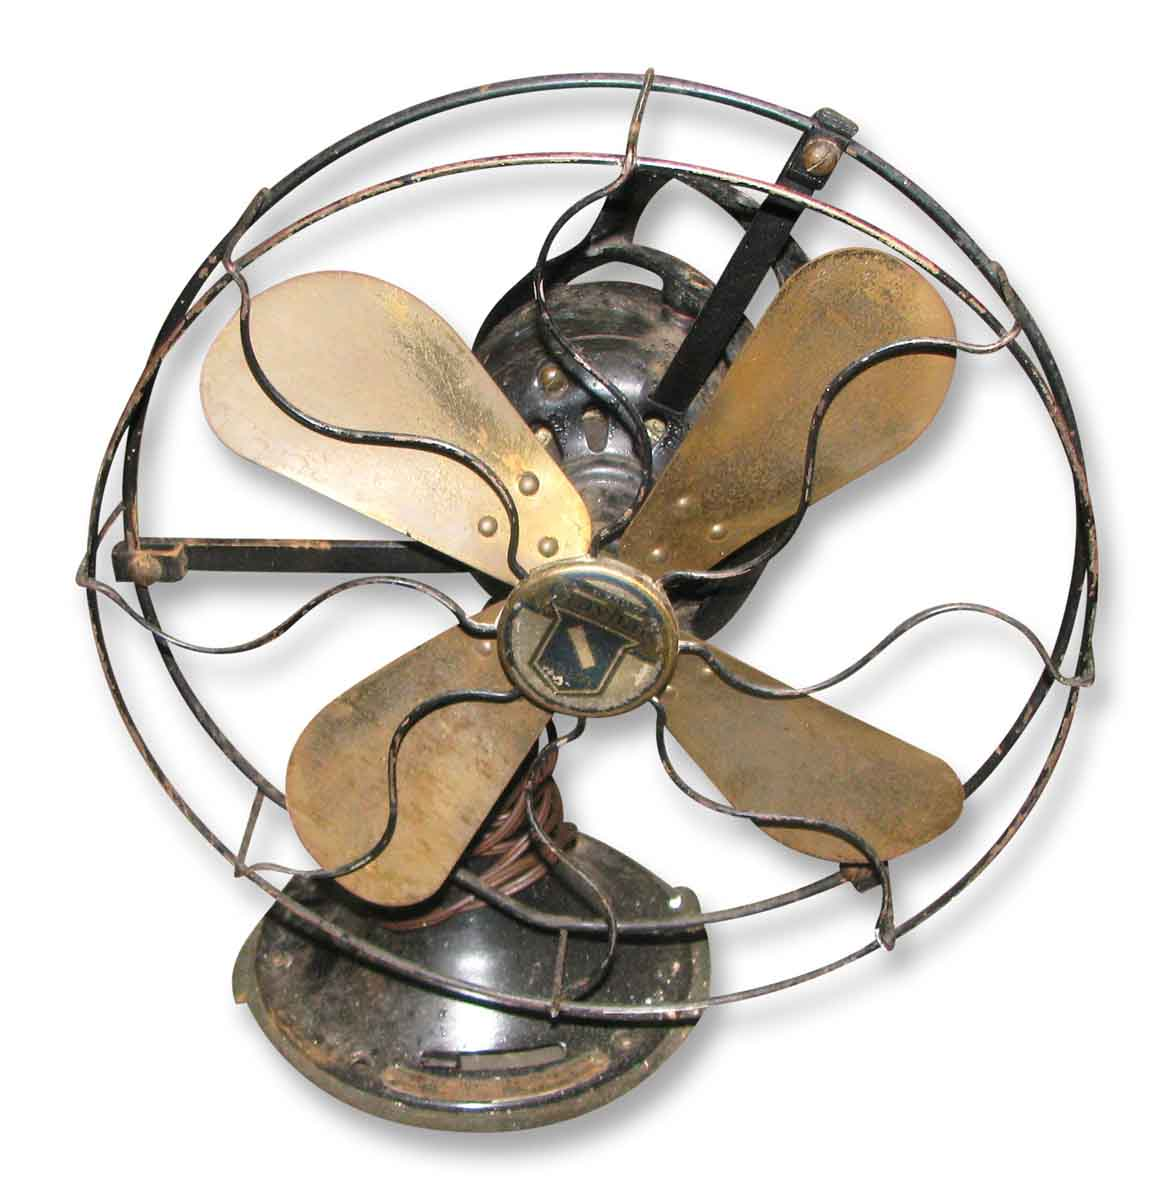 Antique Oscillating Fan With Brass Blades Olde Good Things